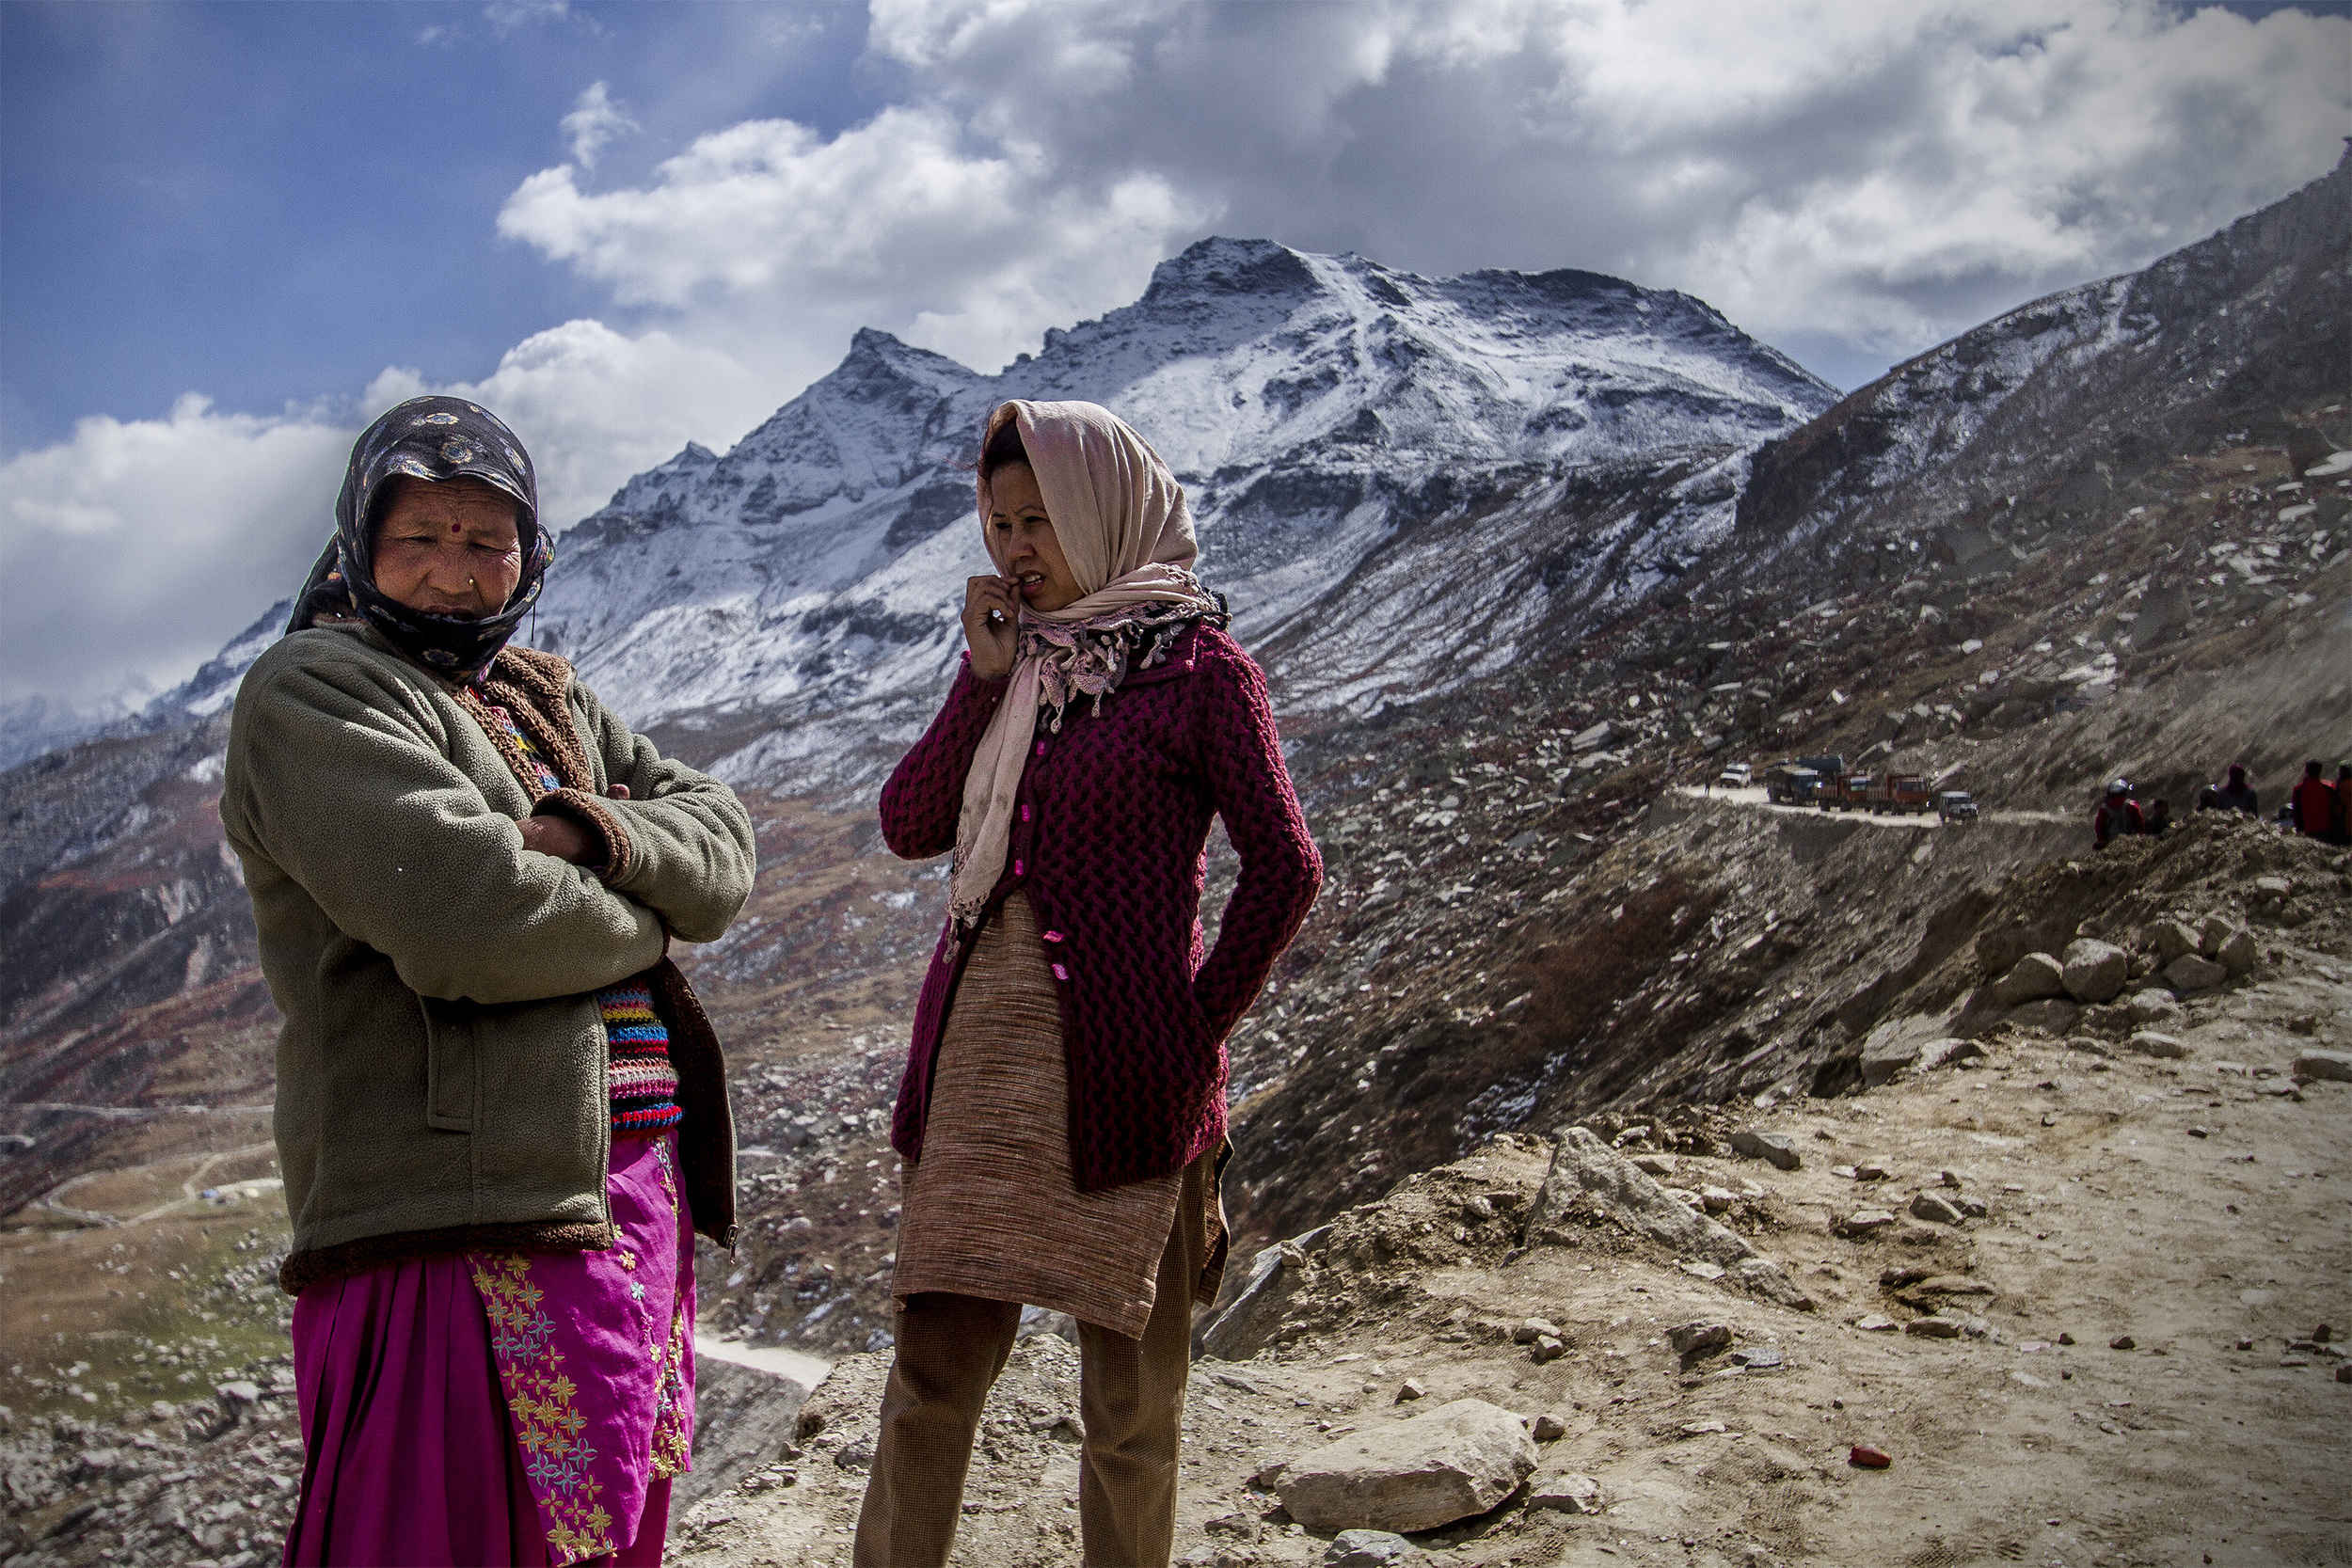 13 October, 2012 - Ascent to Rohtang Pass   Spiti women wait several hours for the road to clear after a small landslide.